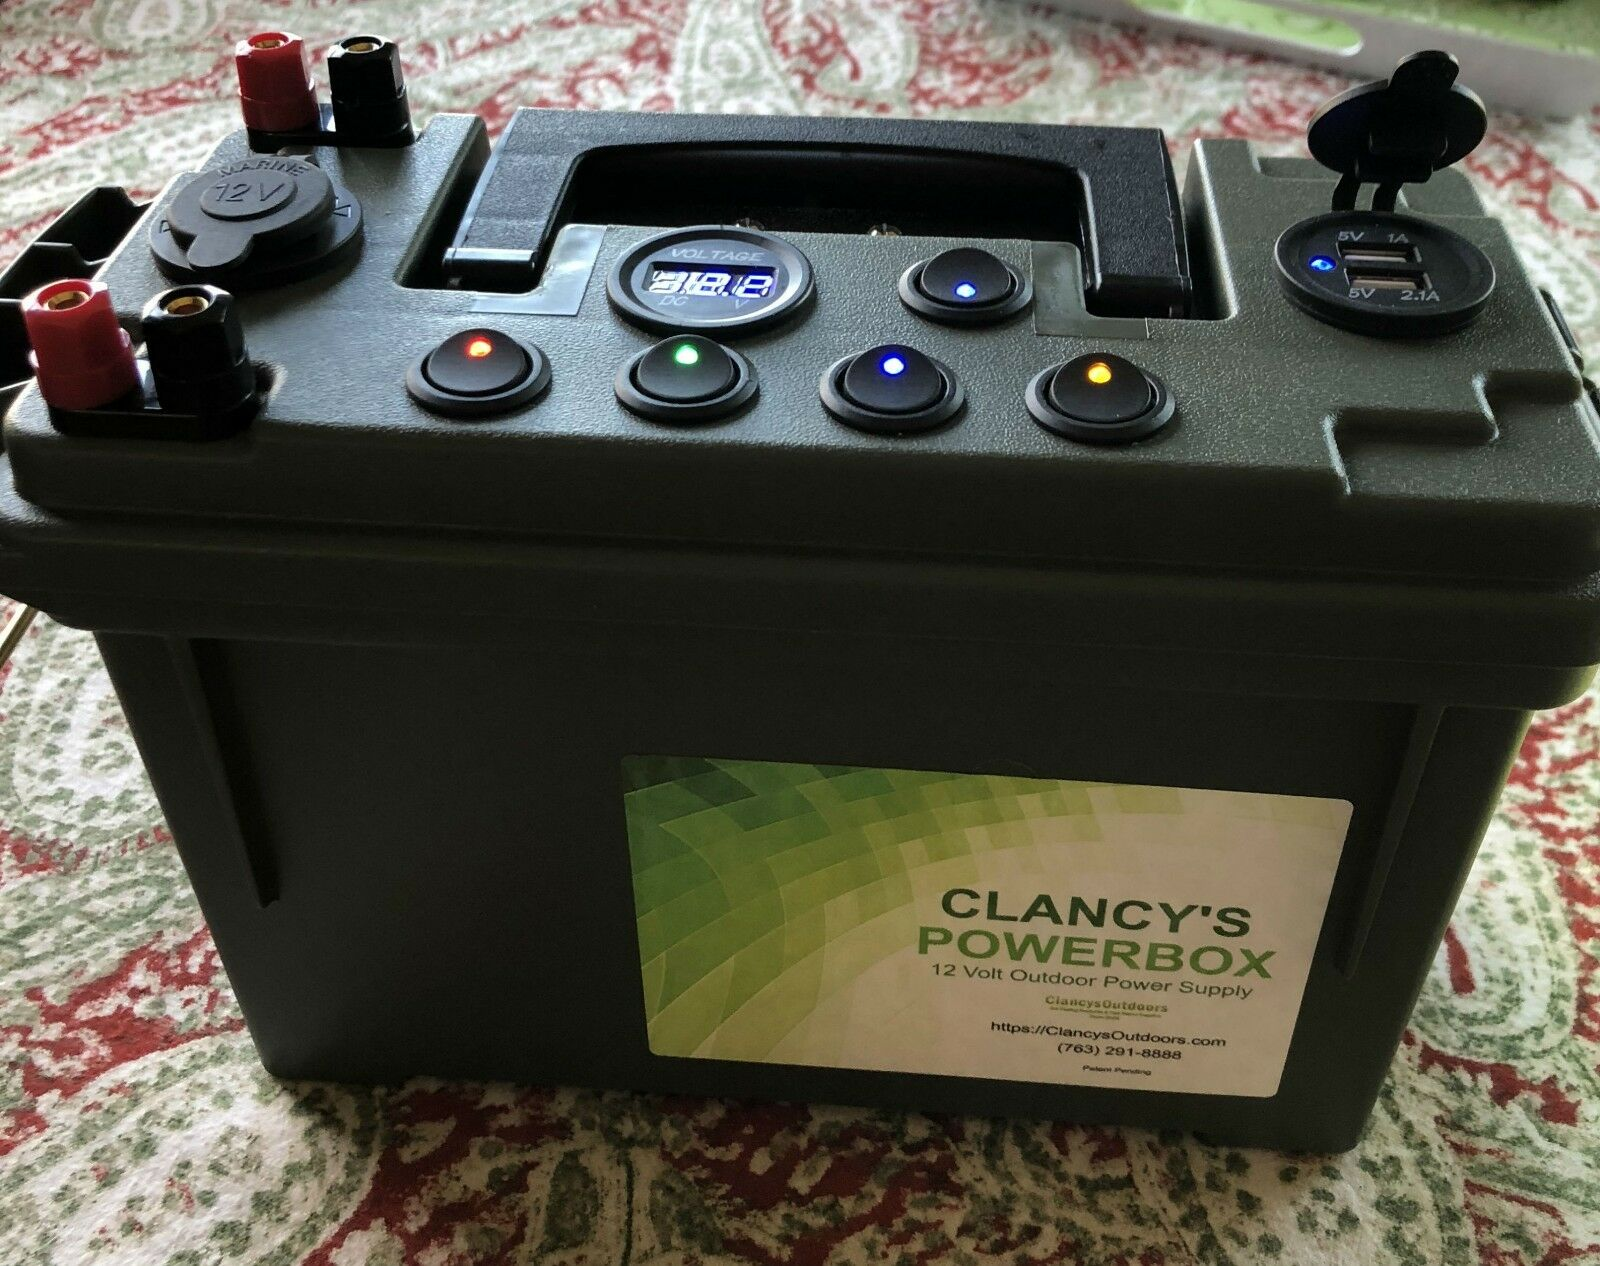 Clancy's PowerBox 12 volt power supply for  ice fishing camping hunting kayaking  in stock